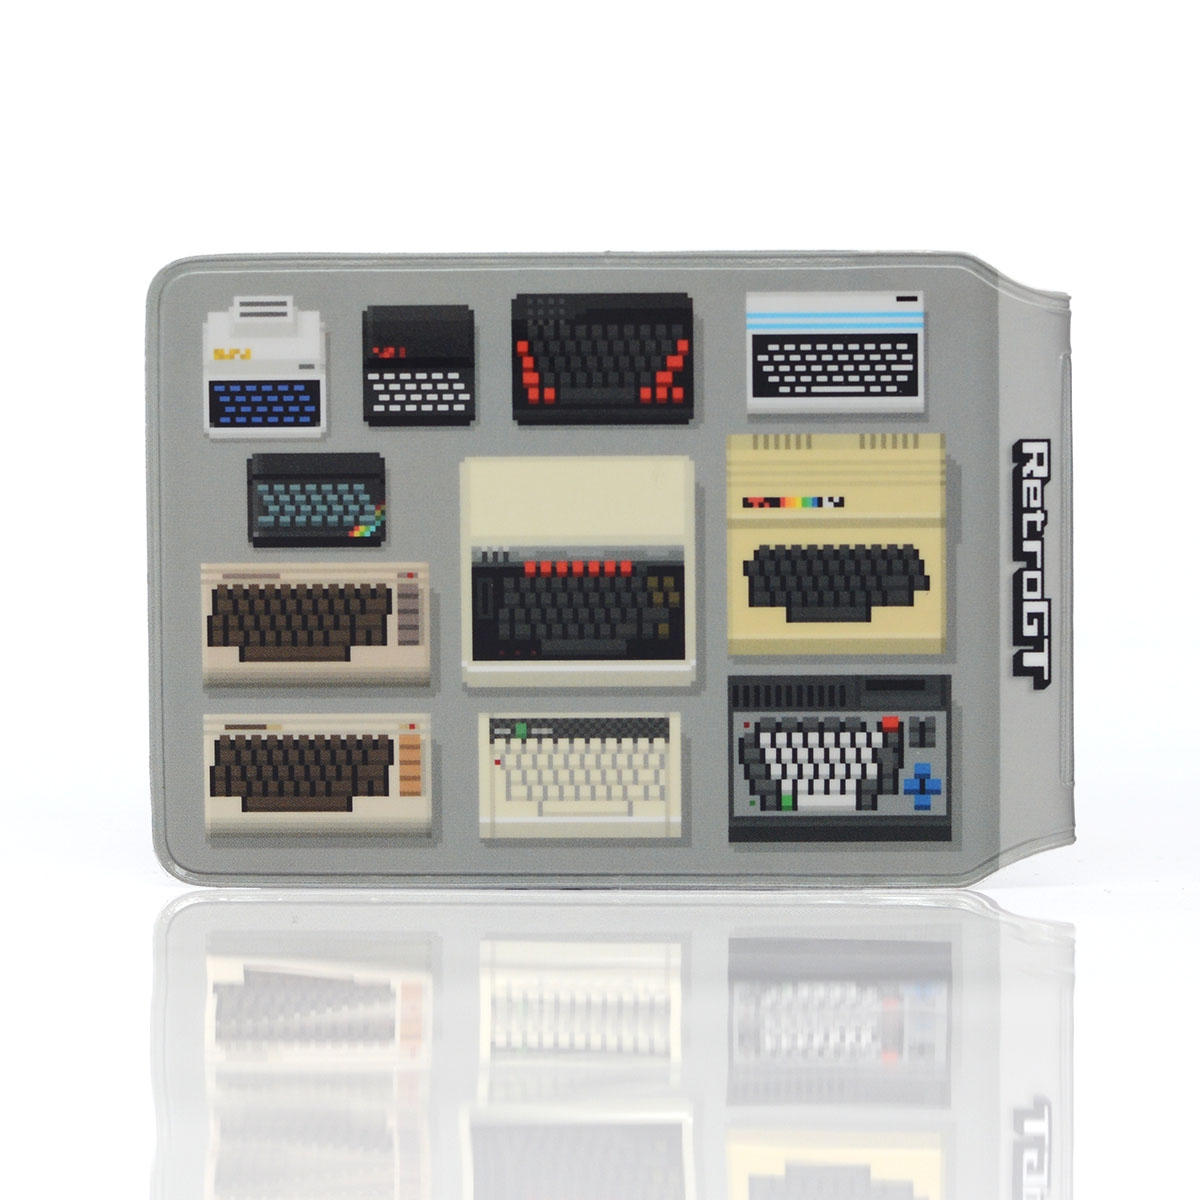 Alternative photo: Pixel Computers Card Holder